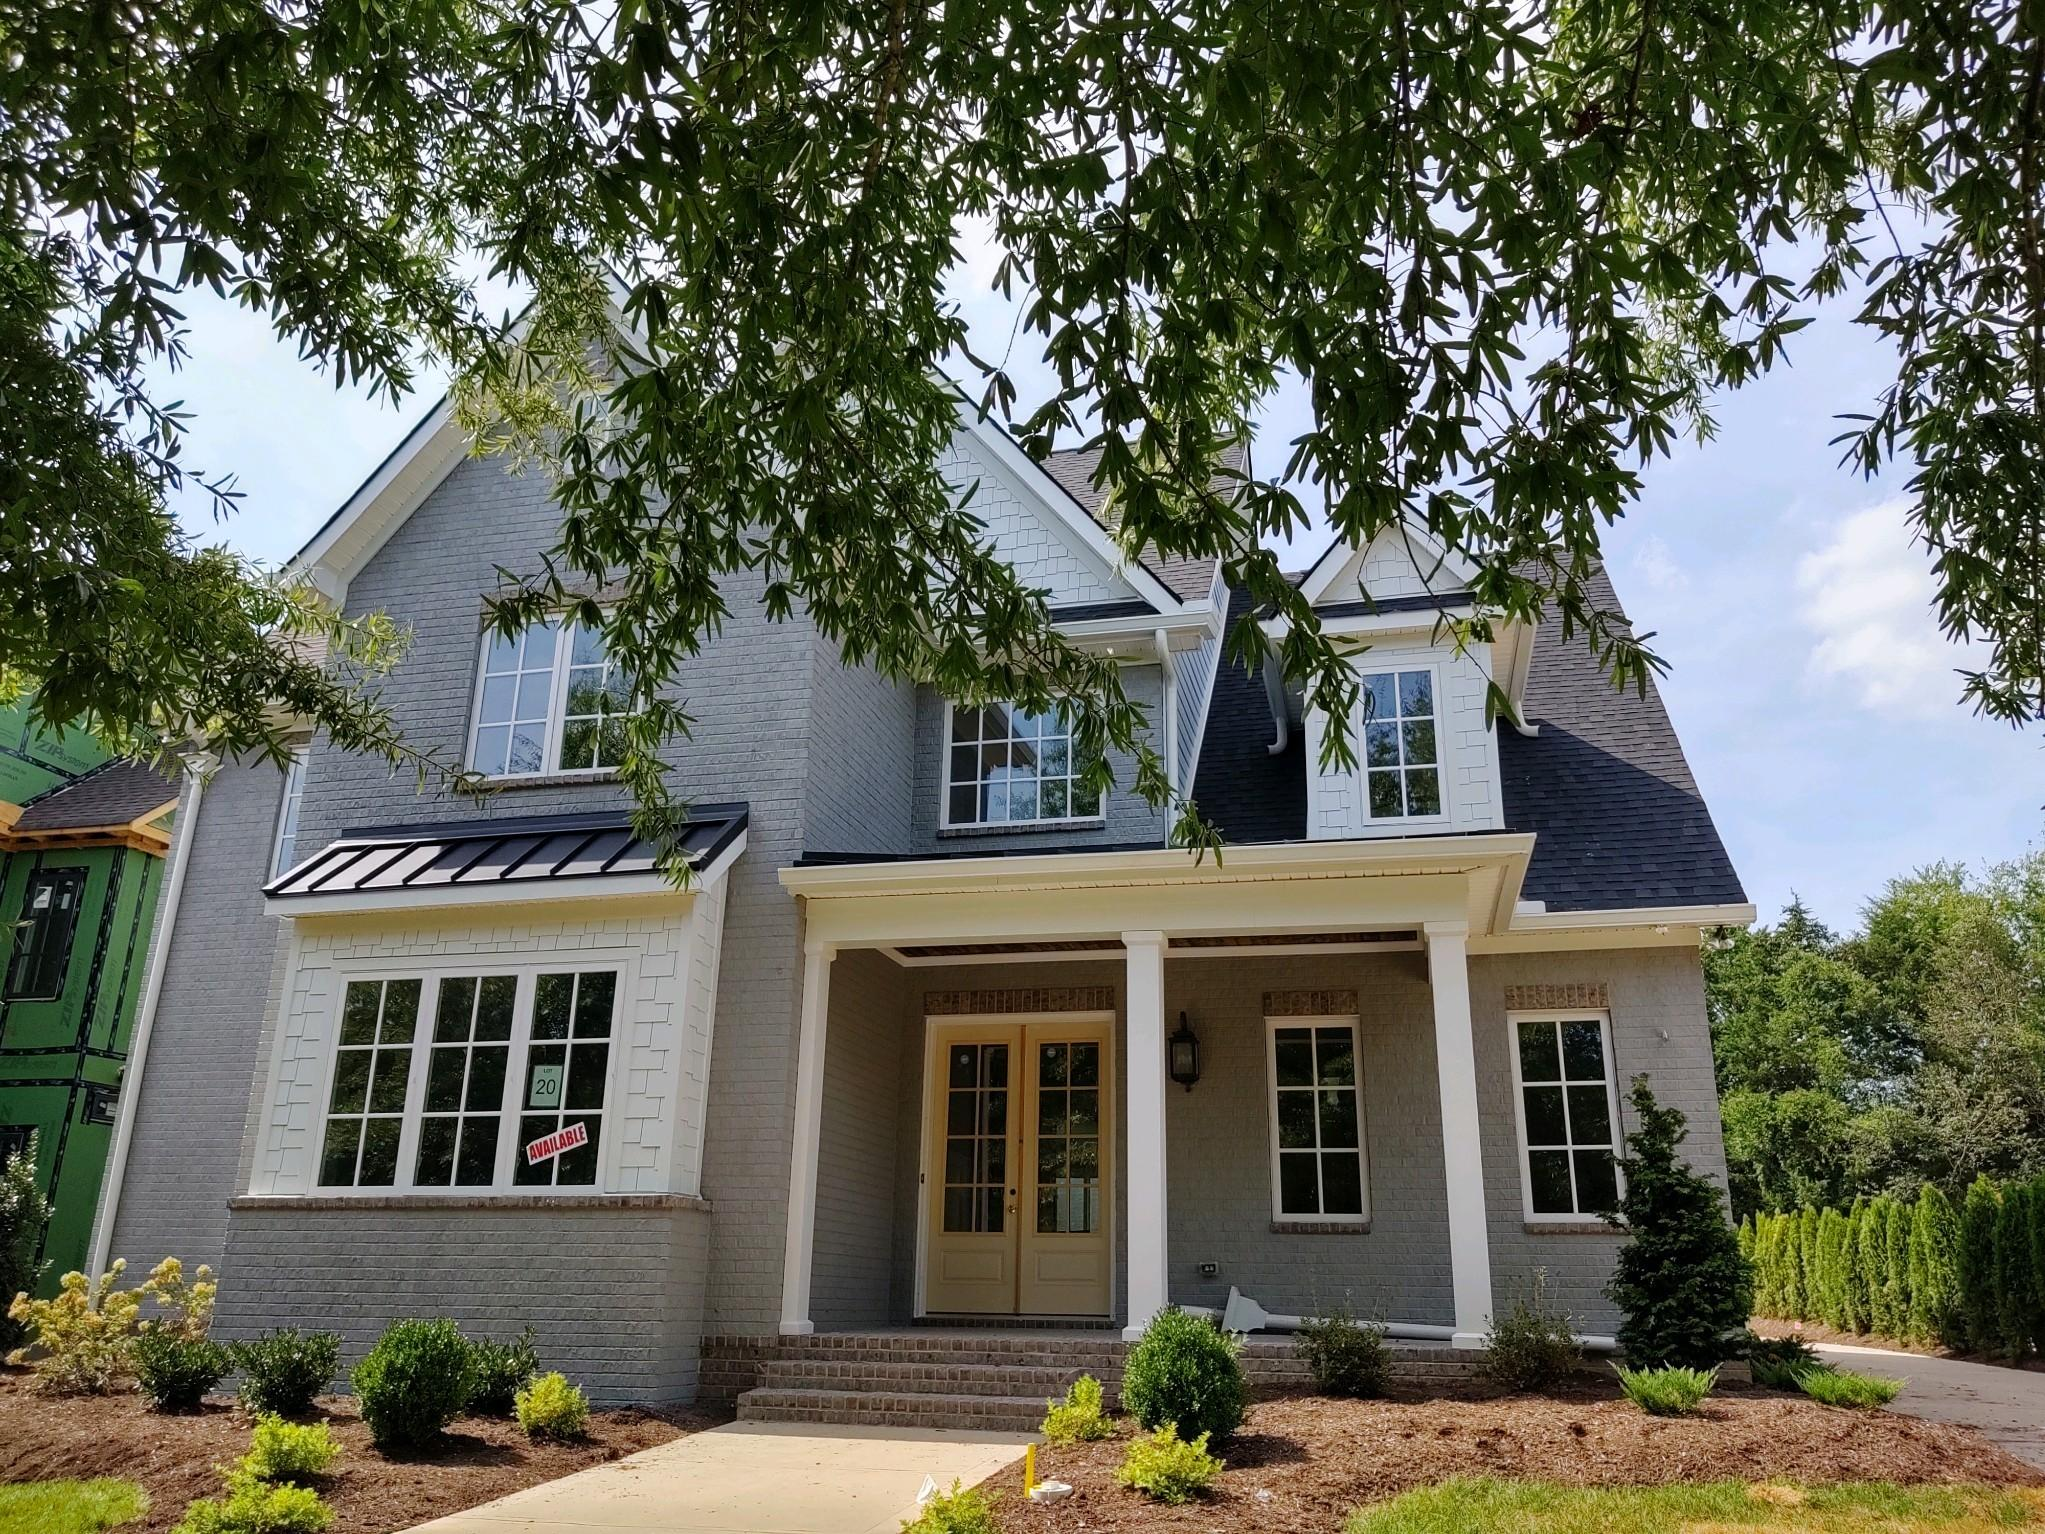 Leadenhall Gardens Way, Knoxville, Tennessee, United States 37922, 4 Bedrooms Bedrooms, ,4 BathroomsBathrooms,Single Family,For Sale,Leadenhall Gardens Way,1086188